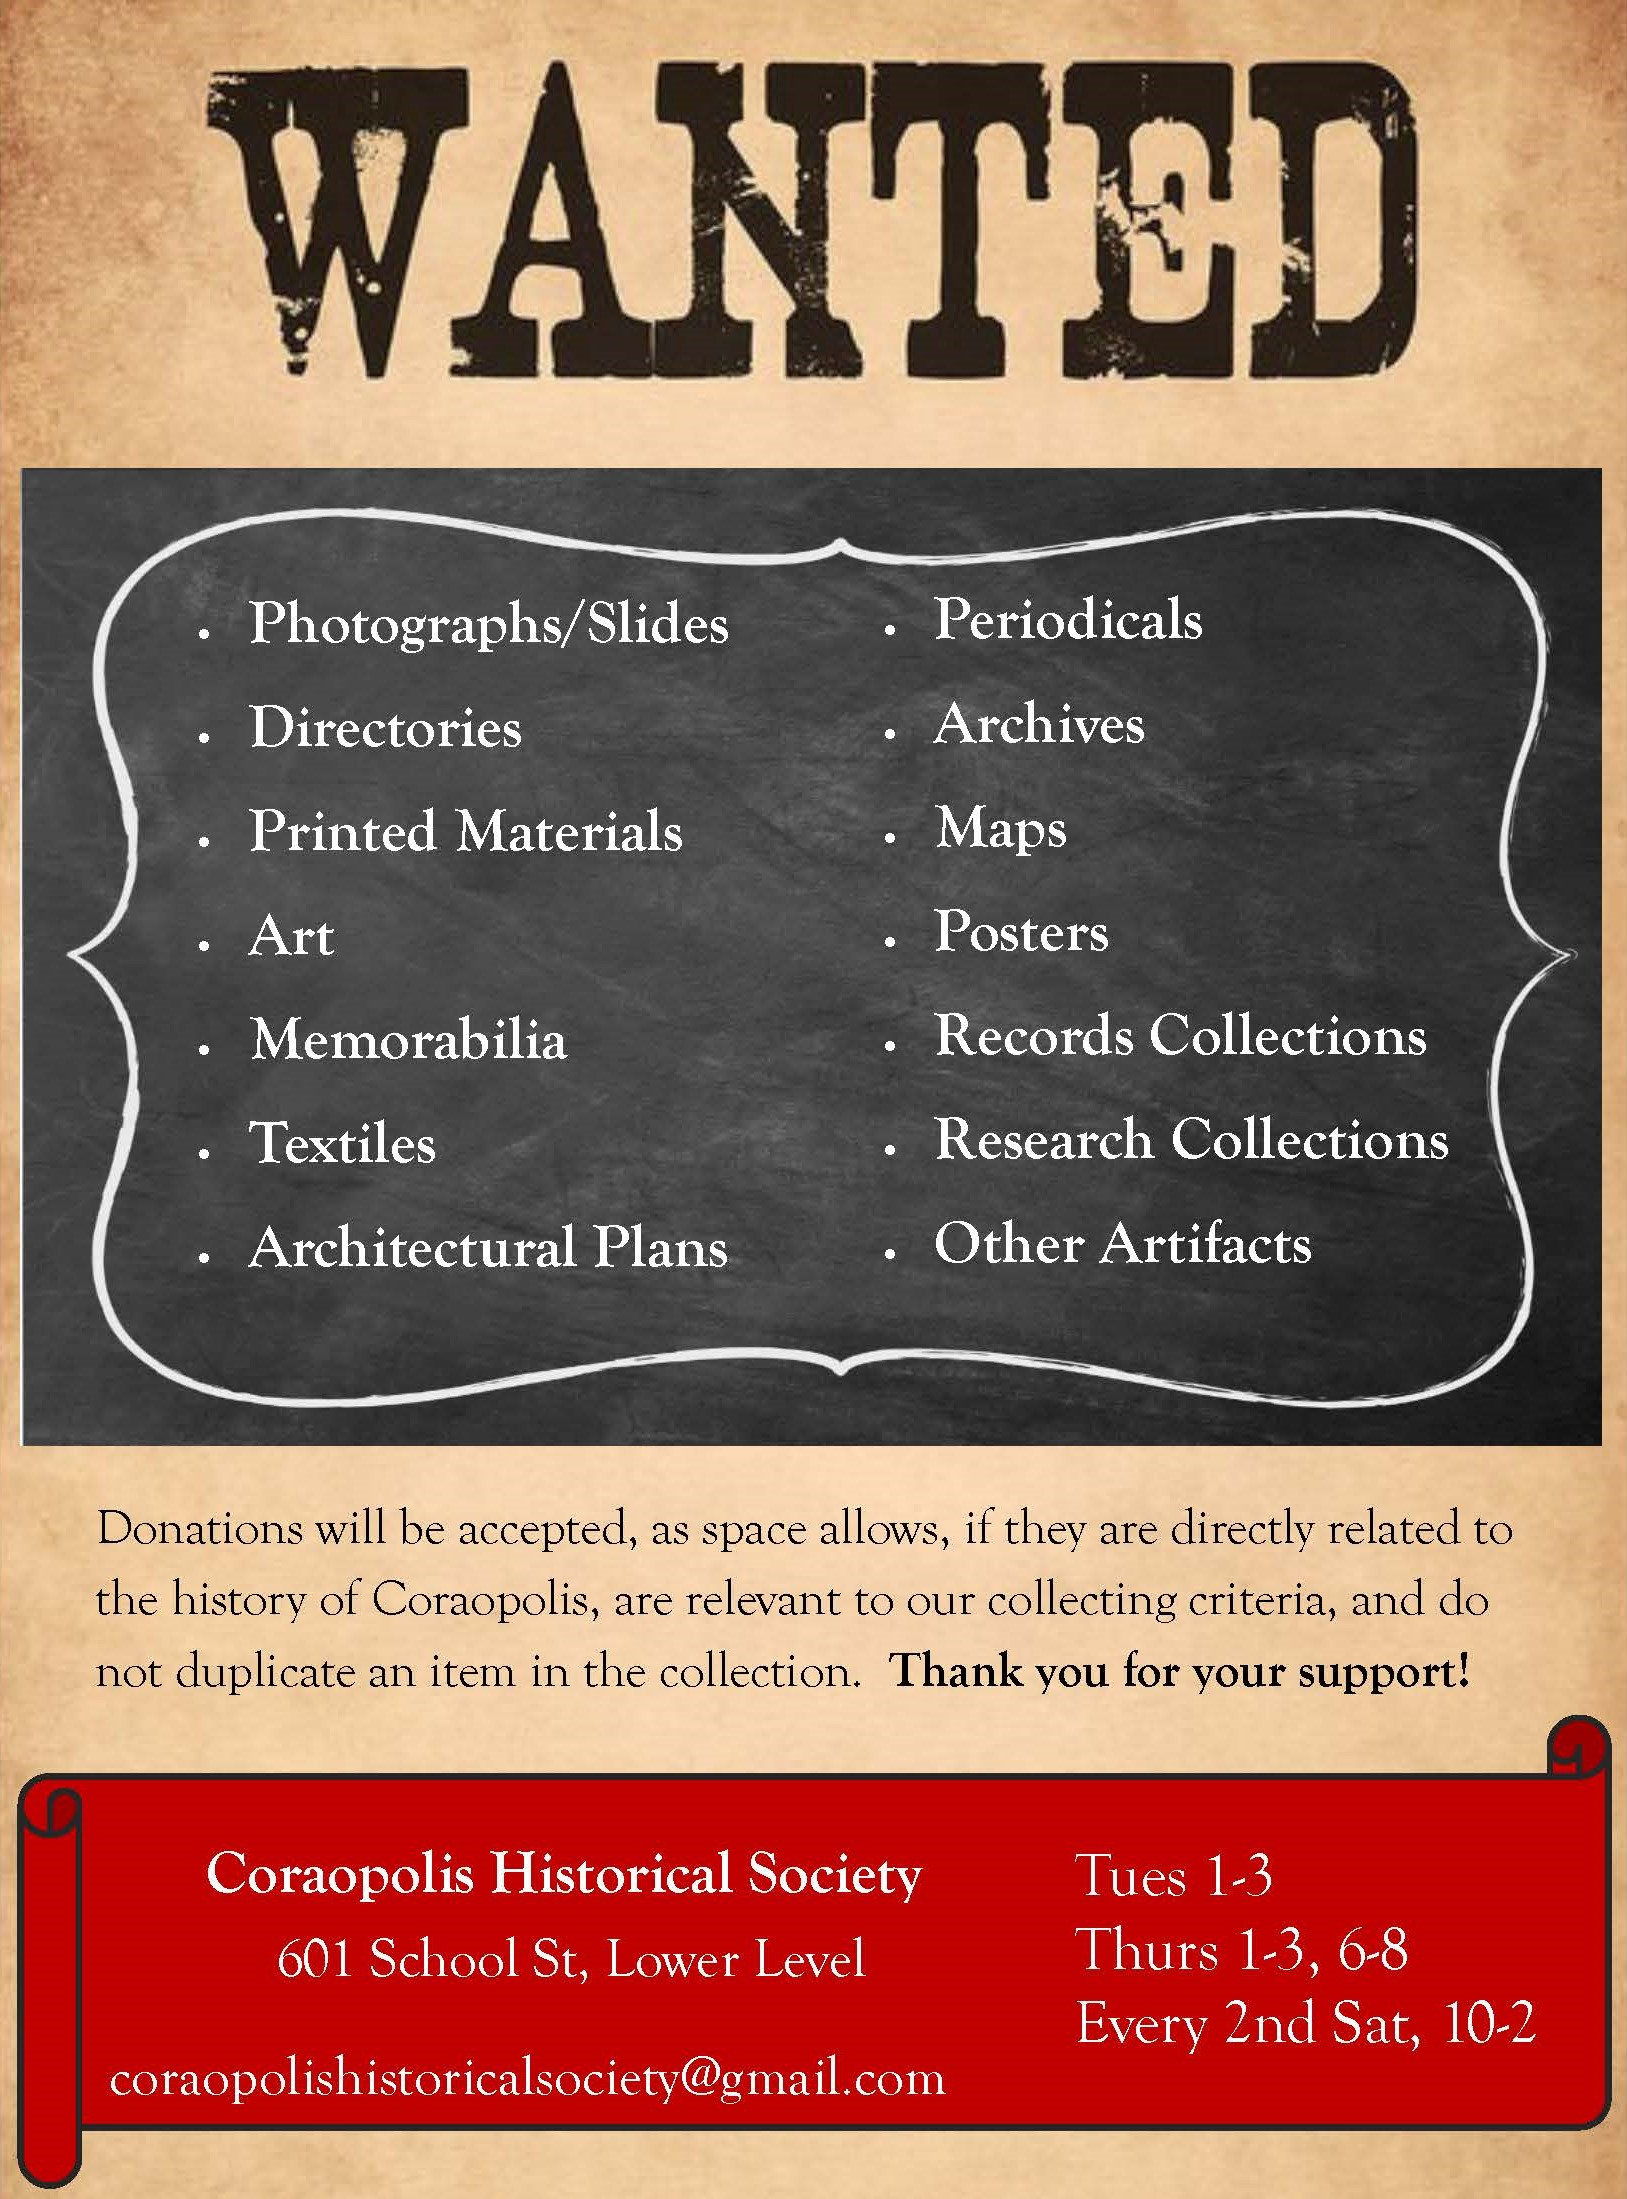 Wanted Items Flyer.jpg